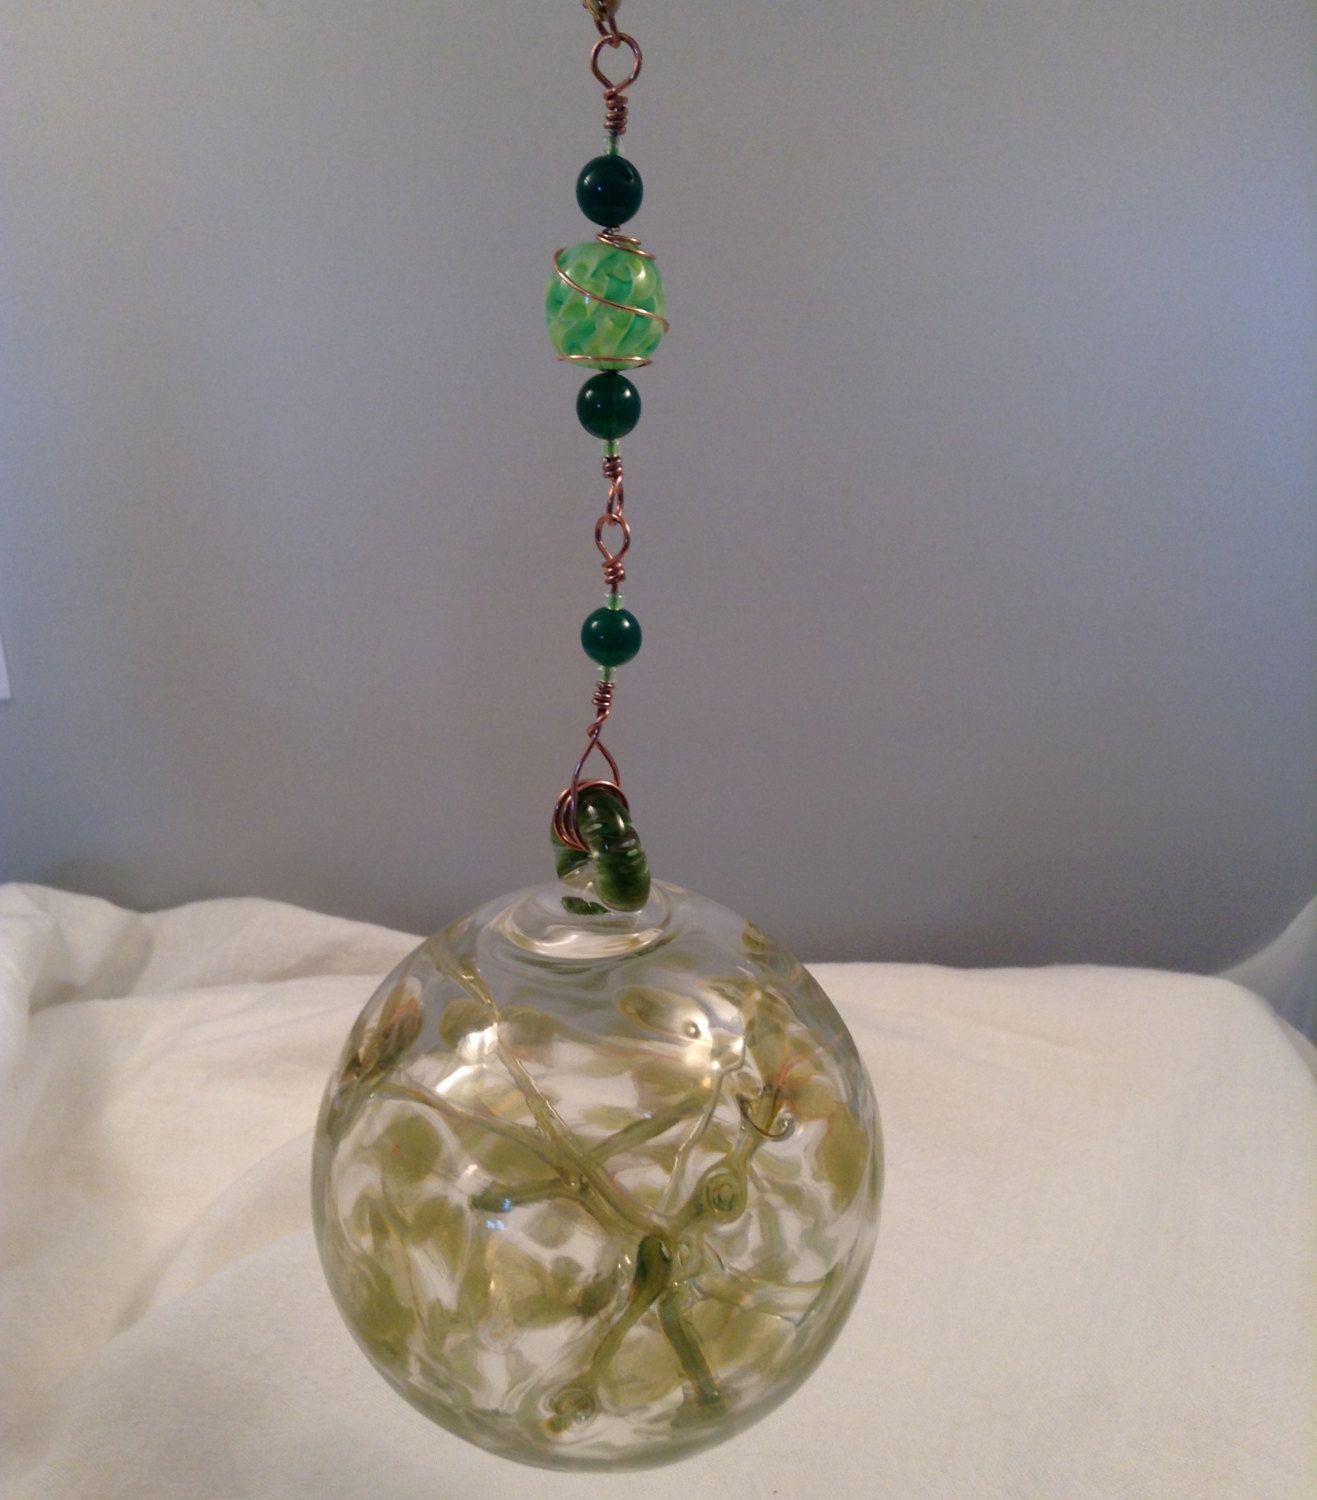 Hand blown clear glass ornaments - Pixie Fairy Orb Witch Ball Hand Blown Glass Hanging Ornament Green With